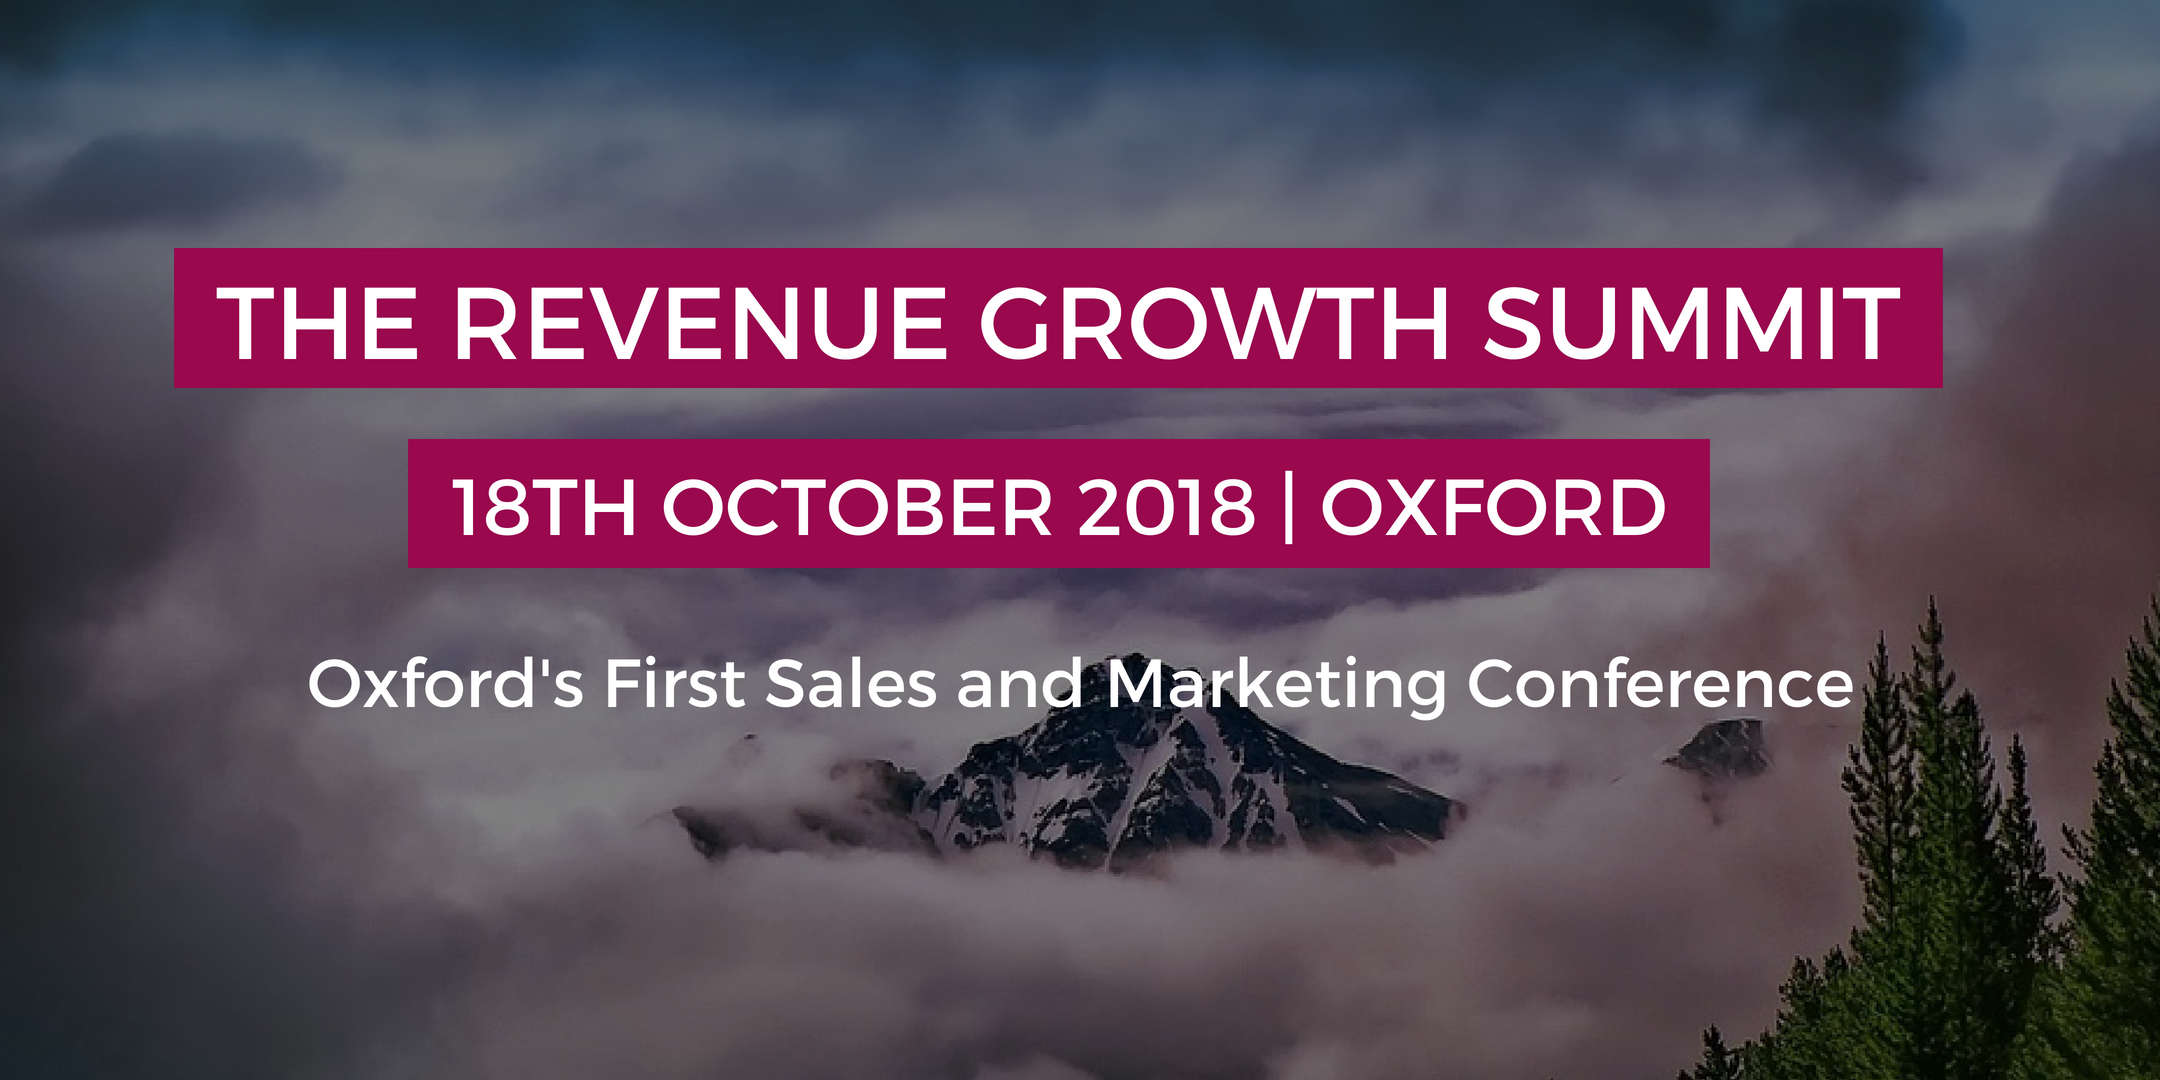 The Revenue Growth Summit